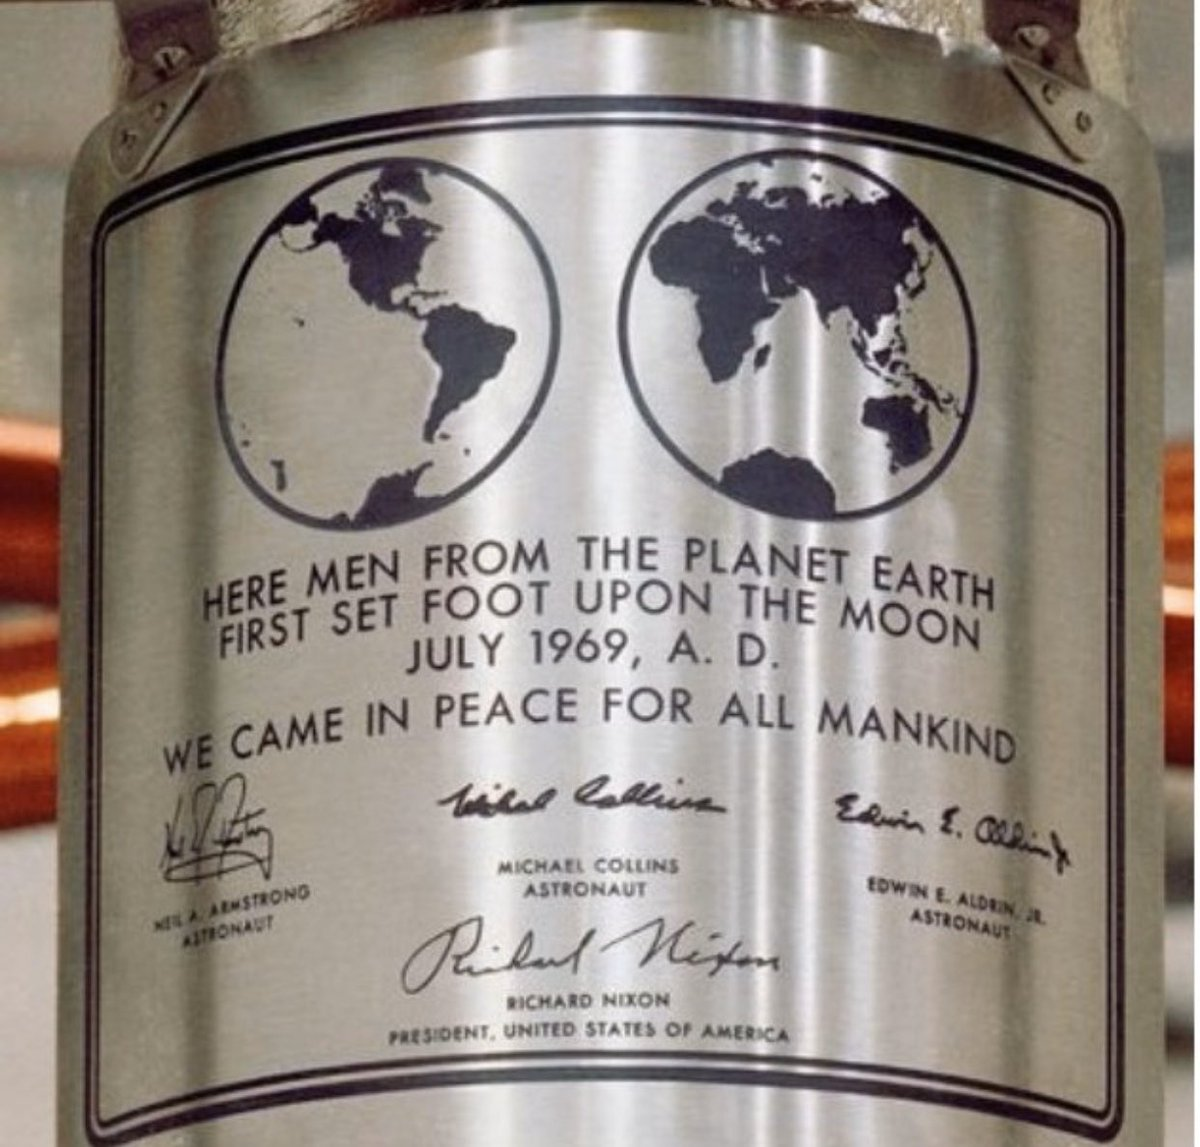 I always marvel at the plaques that we left on the Moon. It was an honor and a privilege to have served on #Apollo11. #Apollo17 was the last of the Apollo program – but it won't be our last rodeo. Our return to the Moon will be the ultimate homecoming.  #Apollo50th <br>http://pic.twitter.com/jVlQ6wn3px